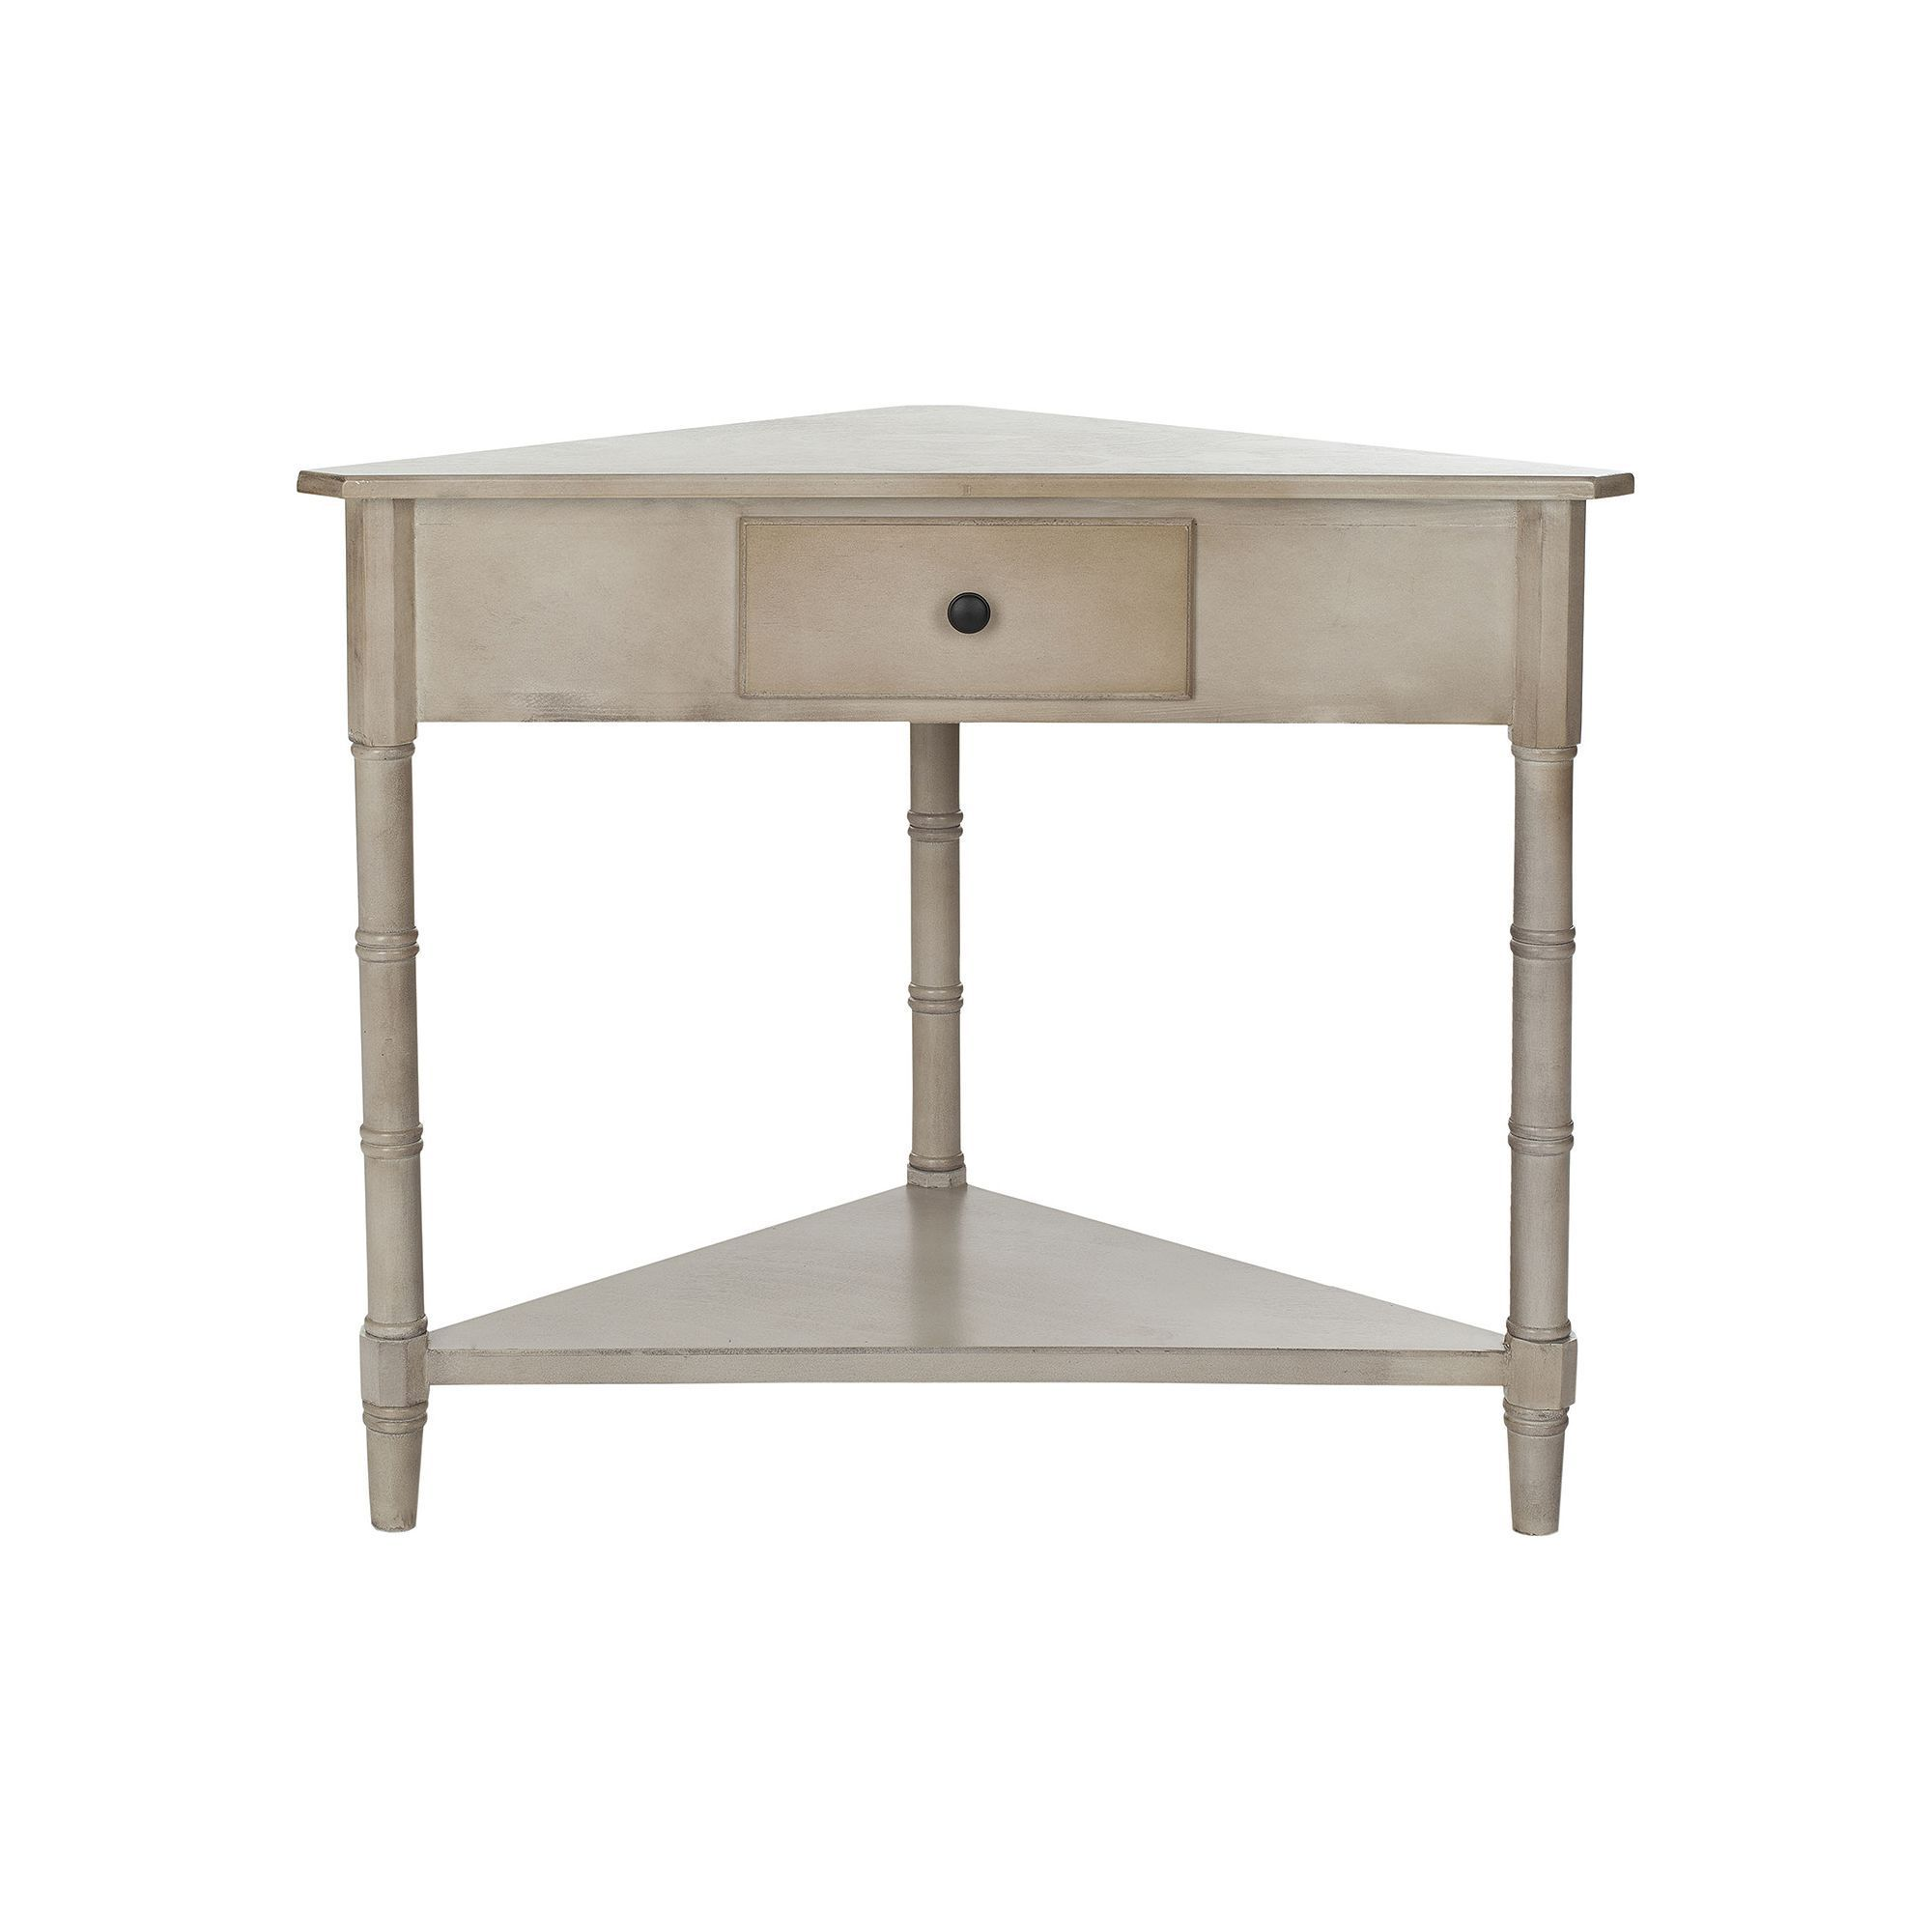 safavieh gomez corner accent table with drawer grey pottery barn frames home decor website concrete look dining ballard slipcovers circle nautical small outside and chairs green